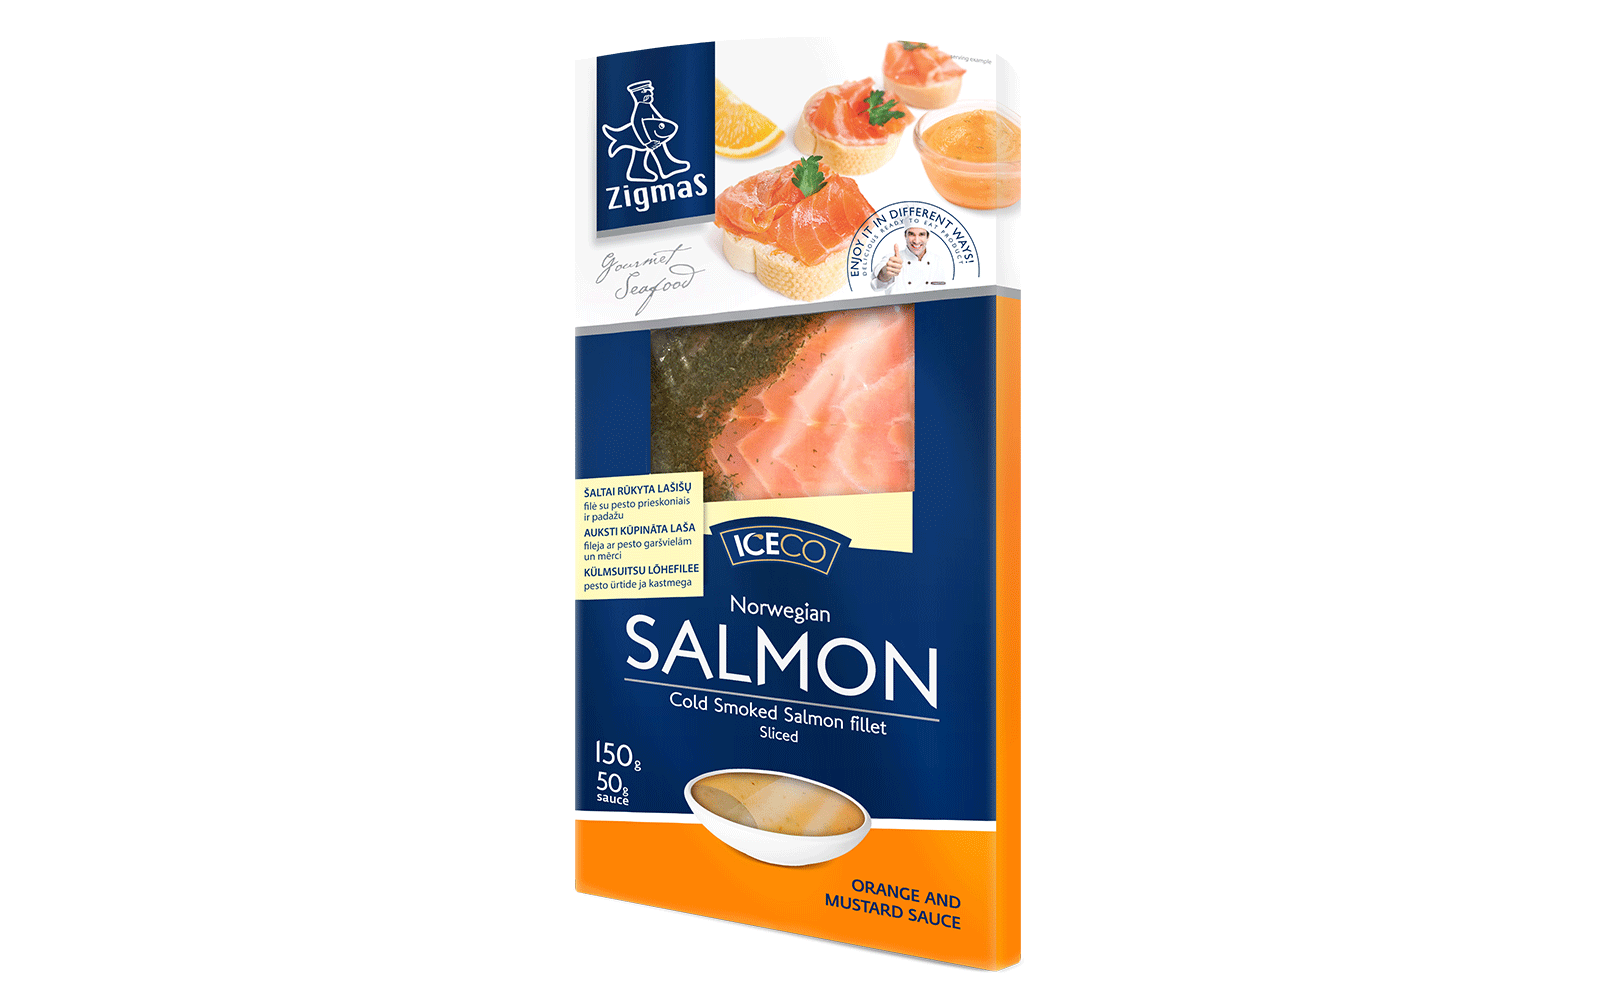 http://www.icecofish.com/wp-content/uploads/2016/06/zigmas-cold-smoked-salmon-fillet-with-pesto-spice-seasoning-and-mustard-orange-sauce-1600x1000.png